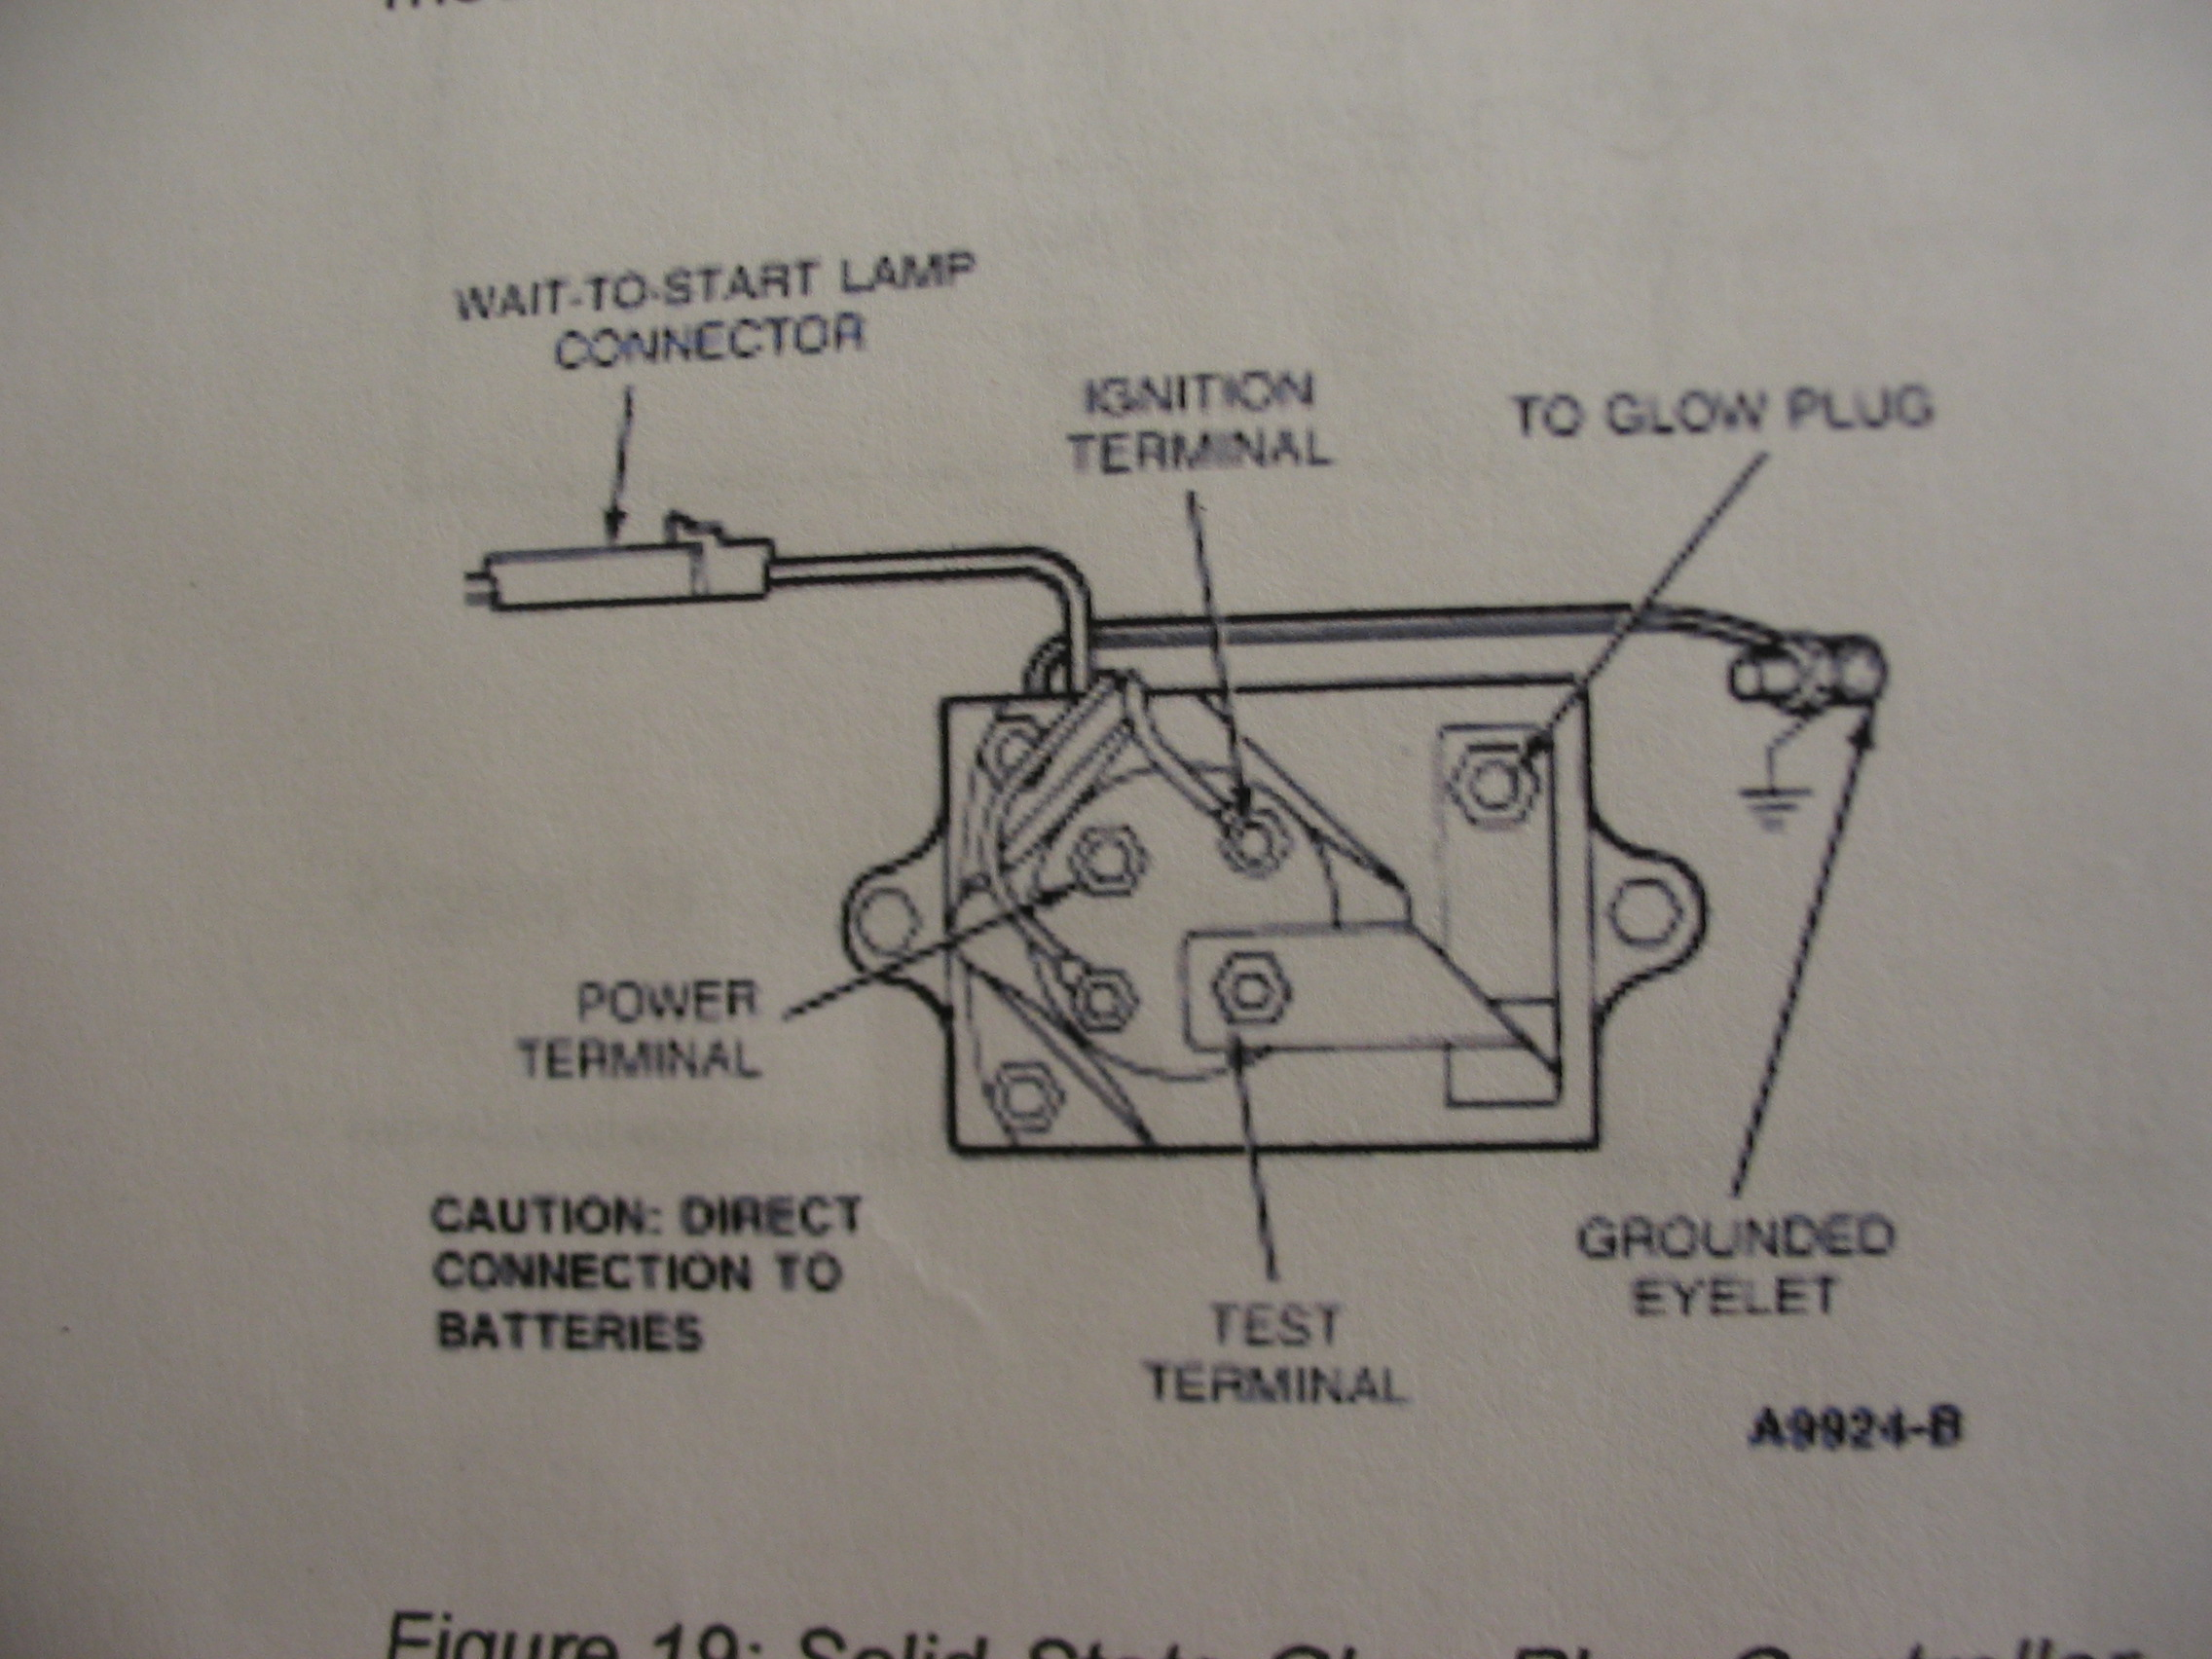 Ford Power Inverter Wiring Diagram from www.wiring-wizard.com